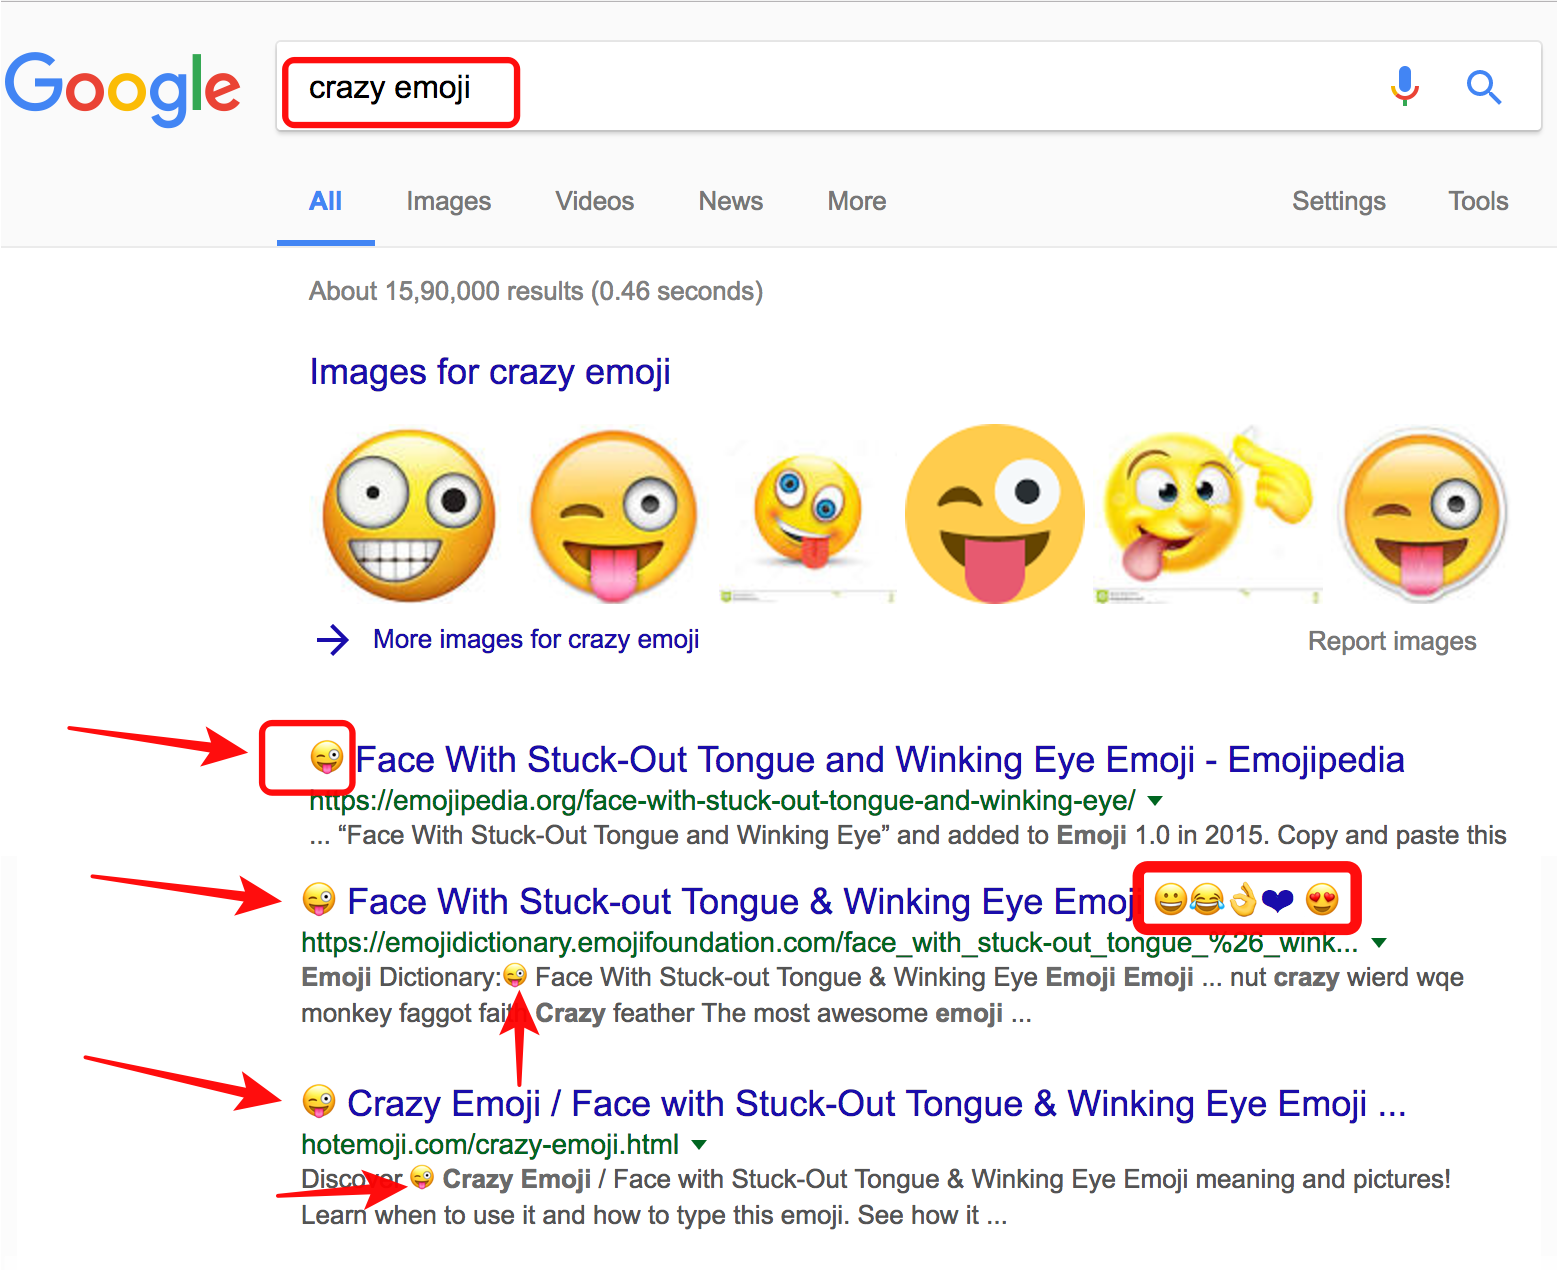 google-search-results-with-crazy-emoticon